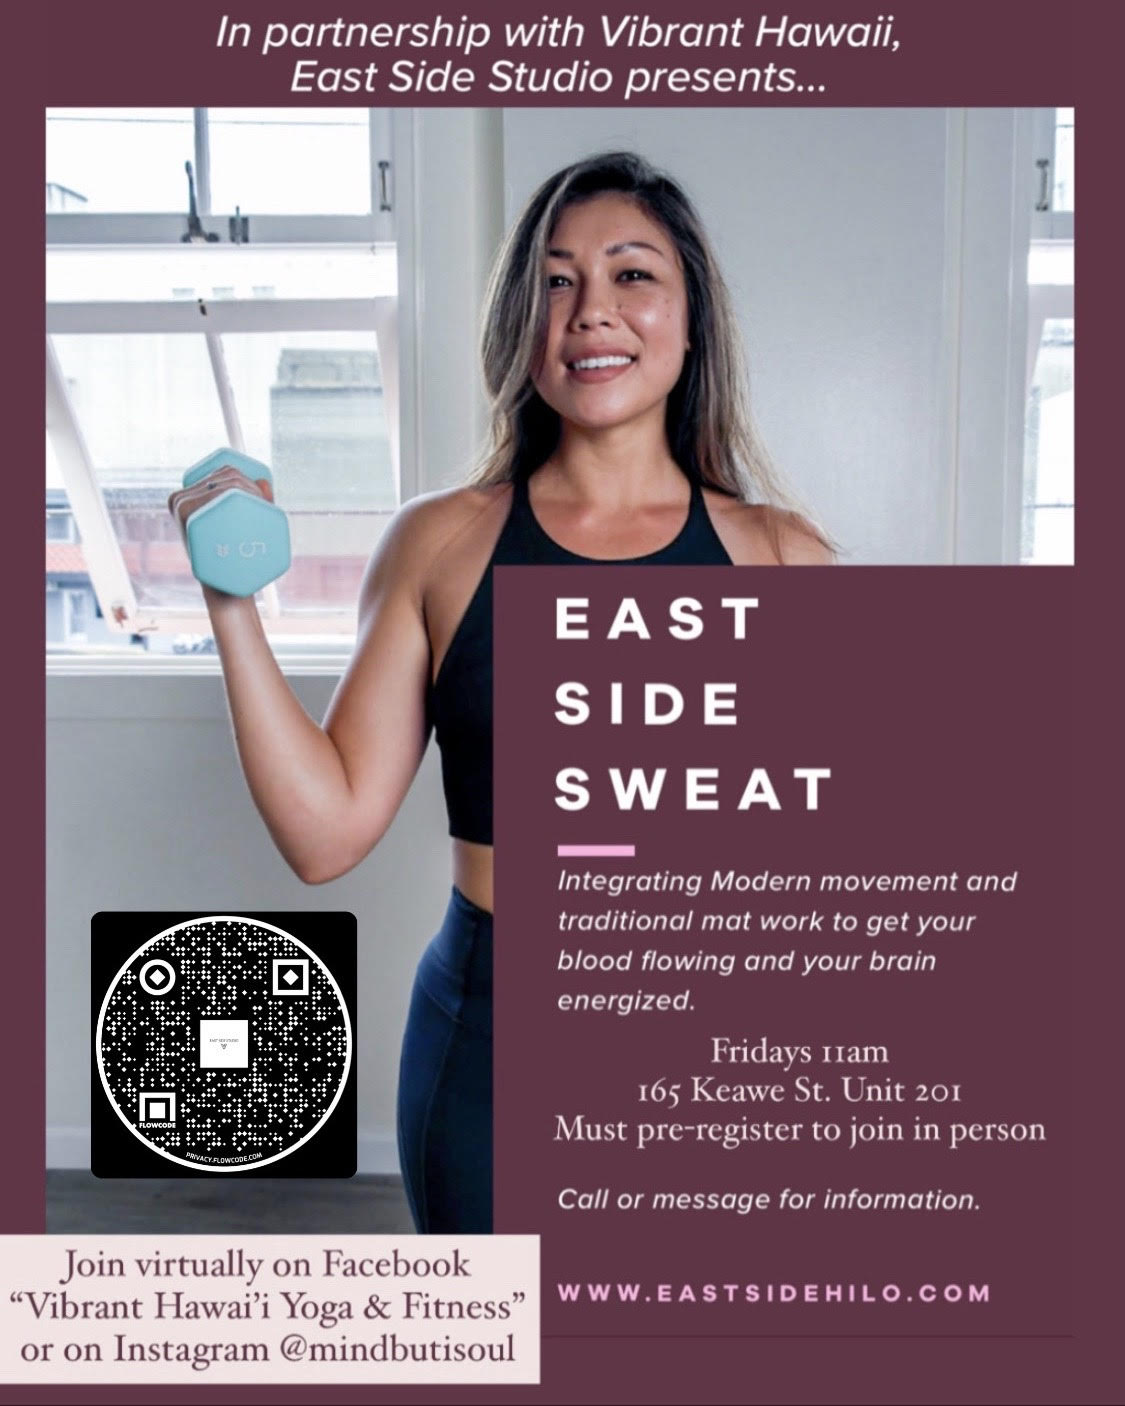 Uh Academic Calendar 2021-2022 East Side Sweat for UH Hilo Students   Event Details